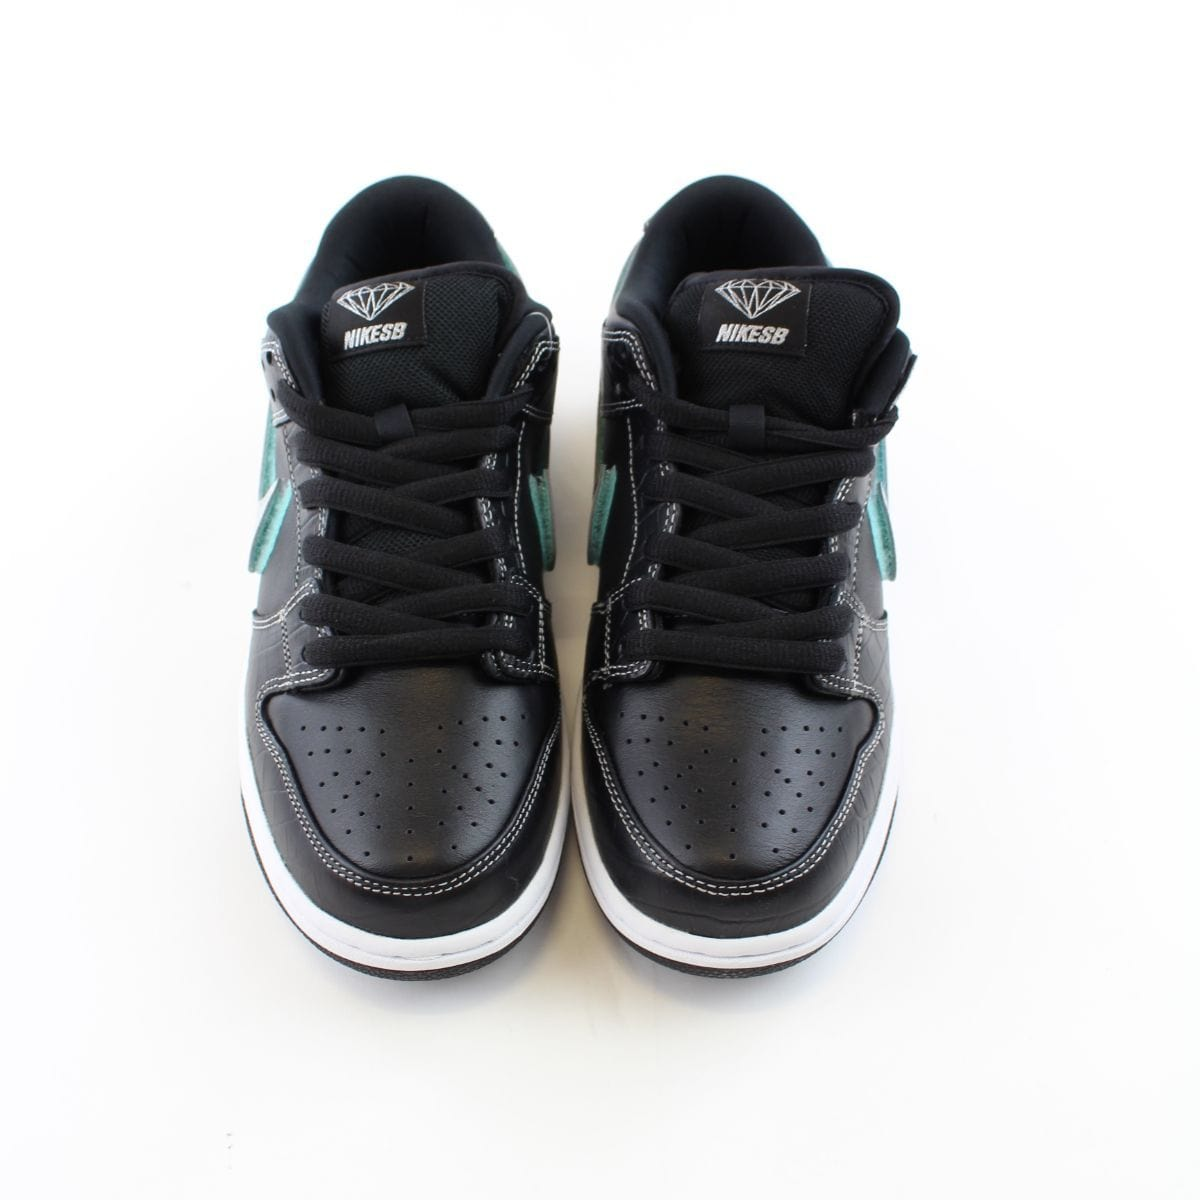 Nike Dunk diamond supply co.